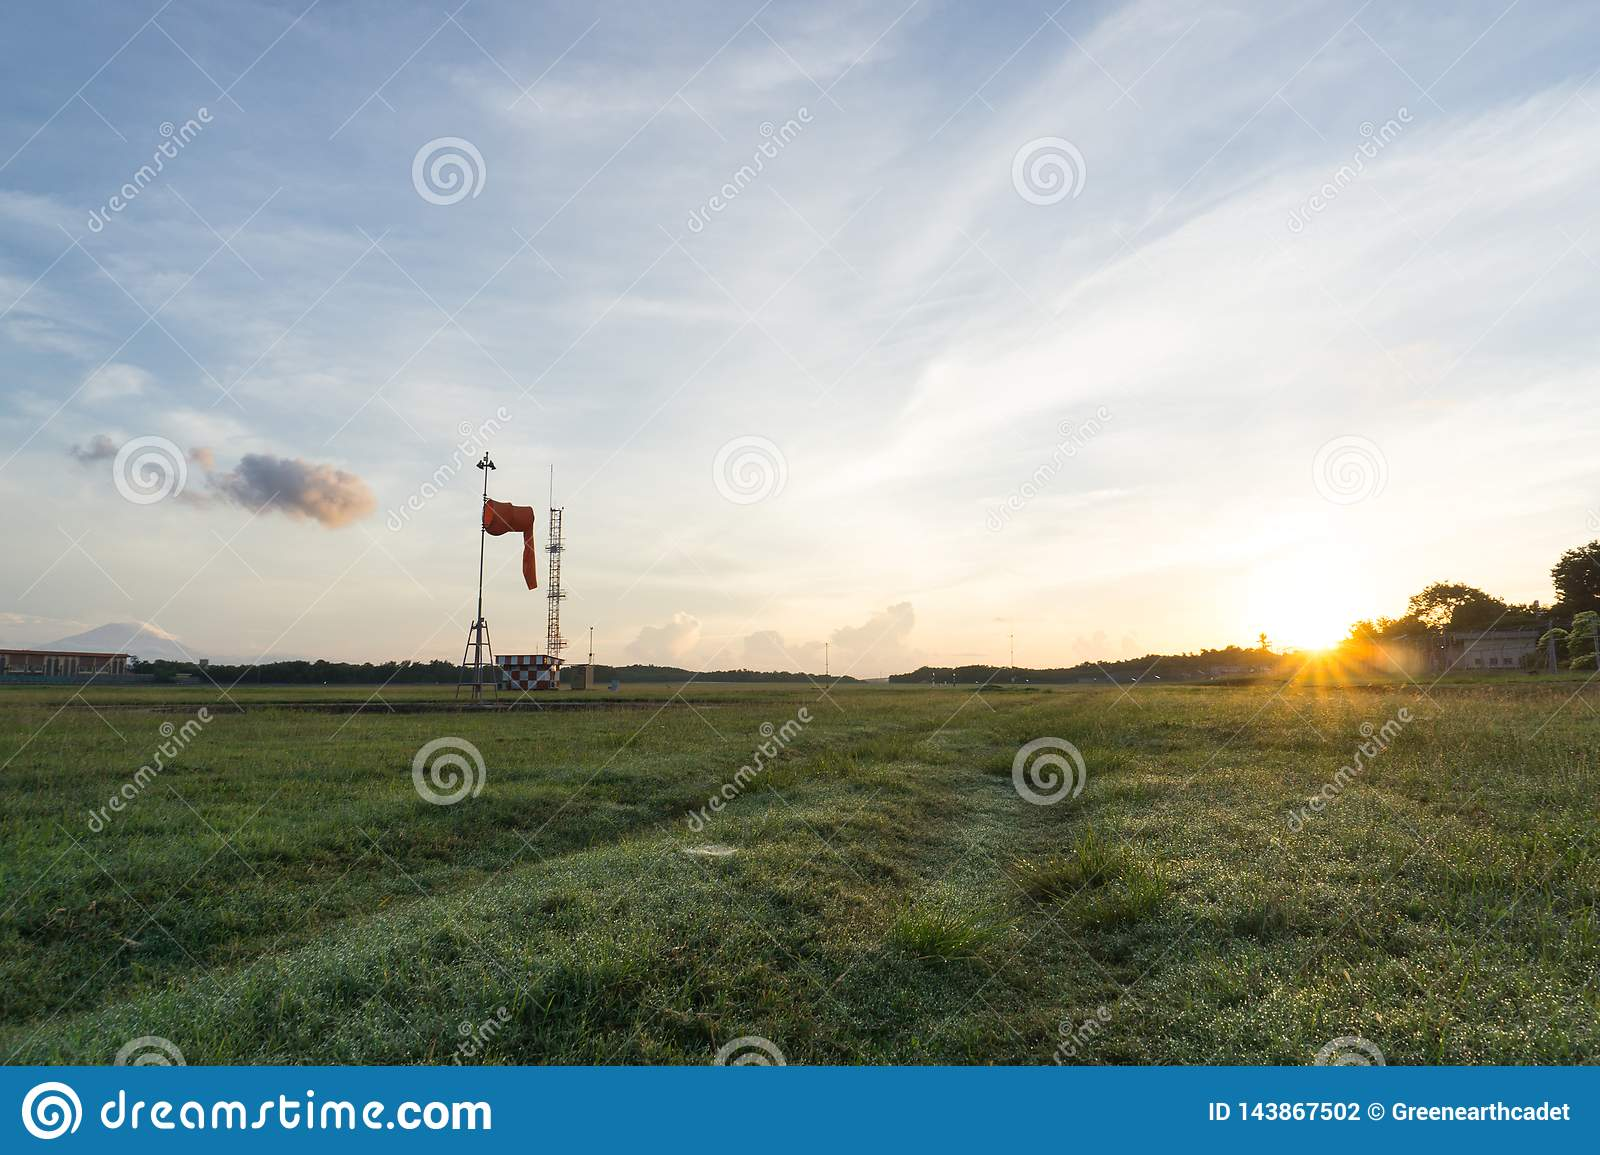 Grass field with sunrise and blue sky background